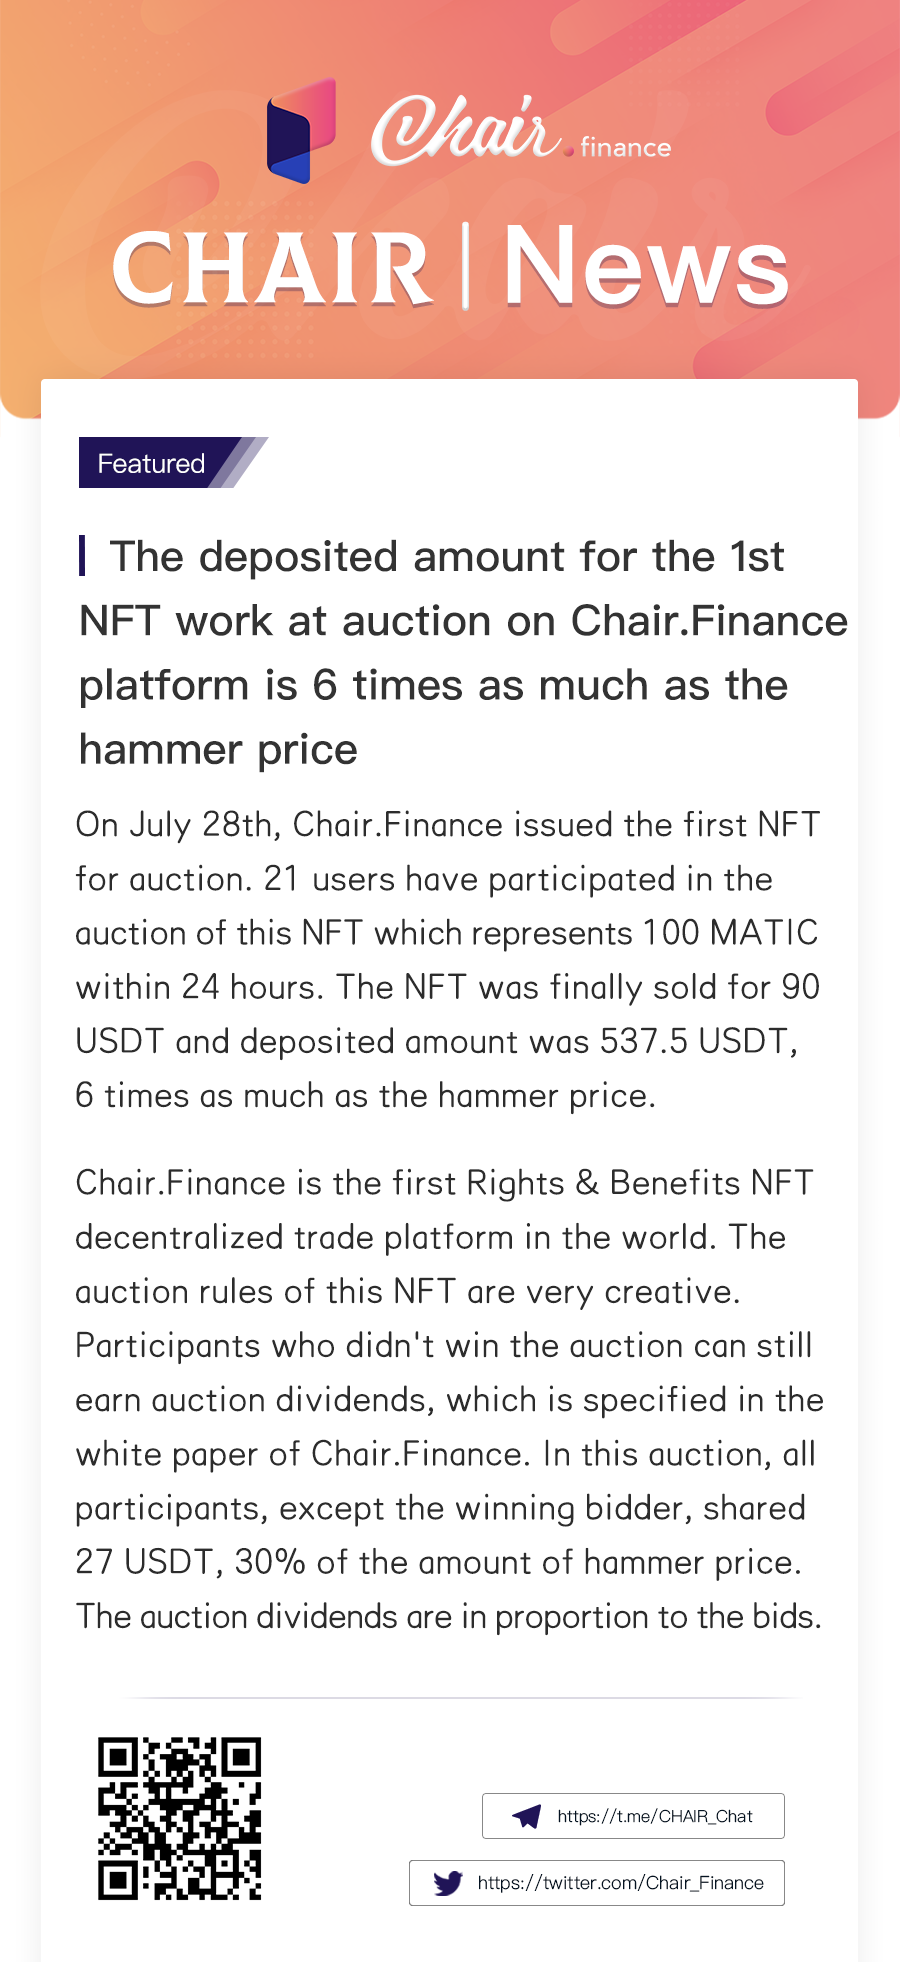 The deposited amount for the 1st NFT work at auction on Chair.Finance platform is 6 times as much as the hammer price